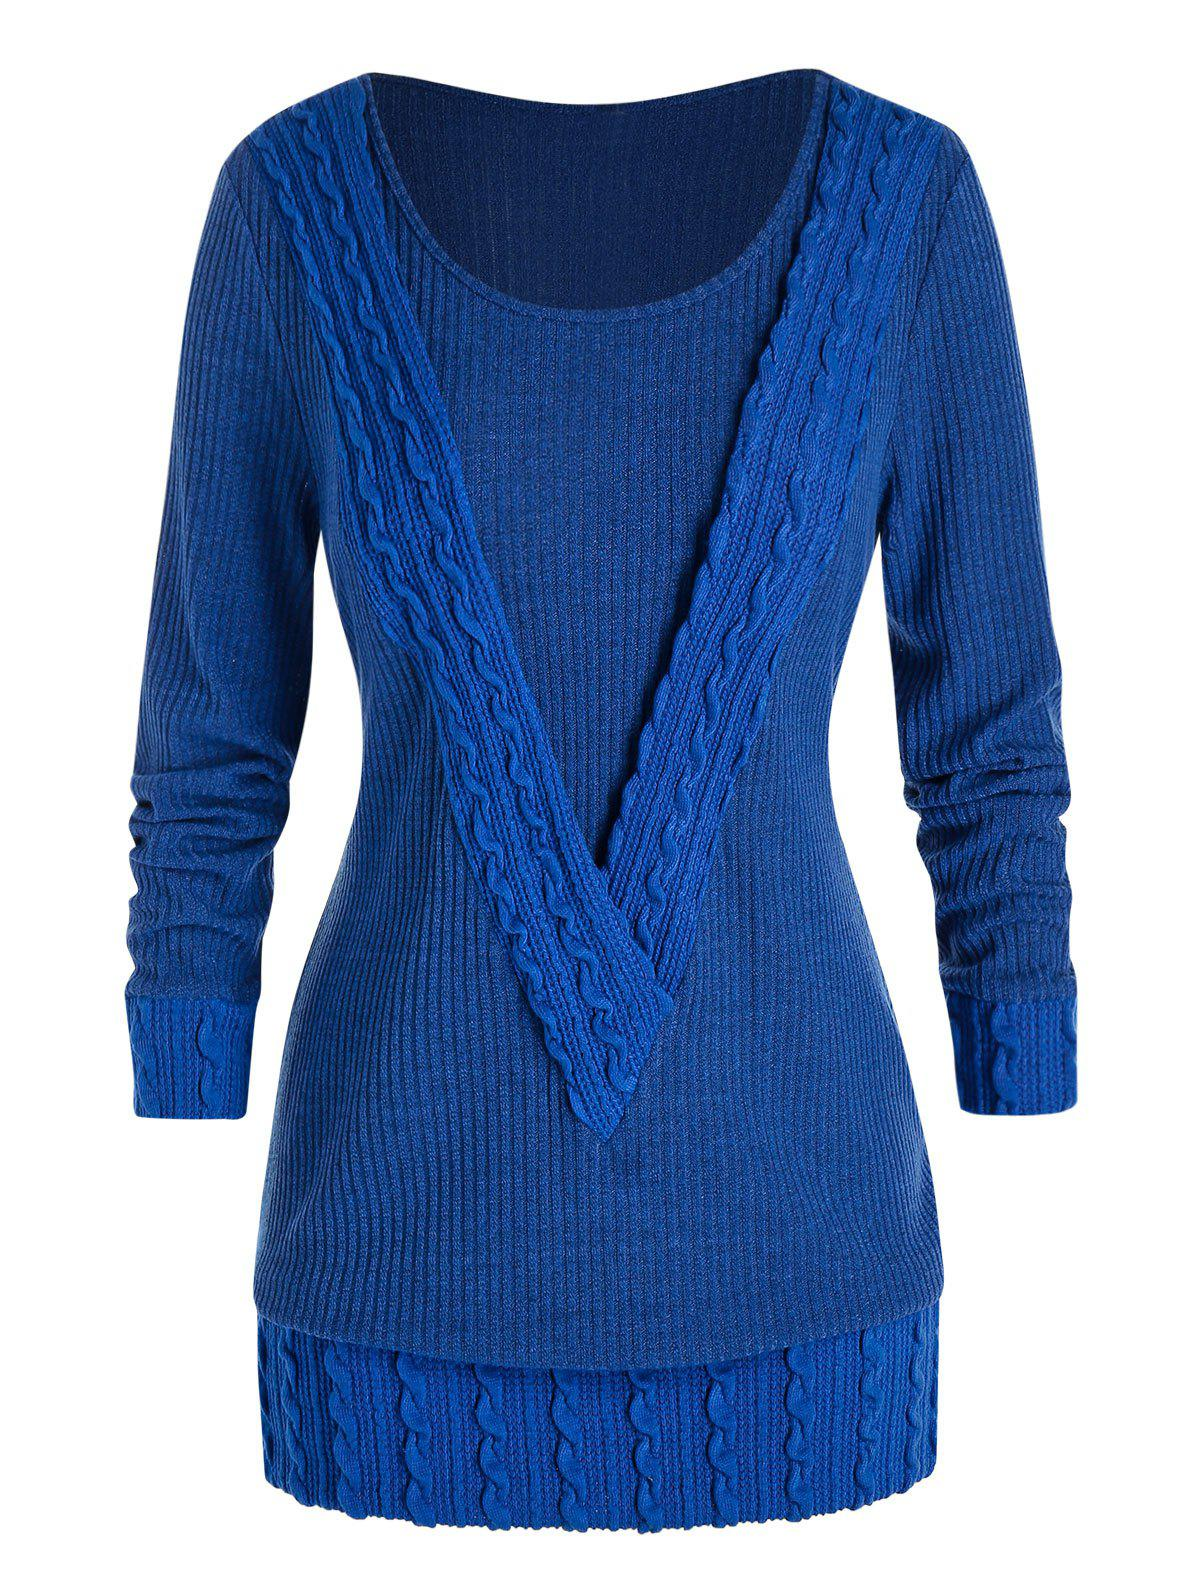 Plus Size Ribbed Cable Knit Sweater - BLUEBERRY BLUE 5X